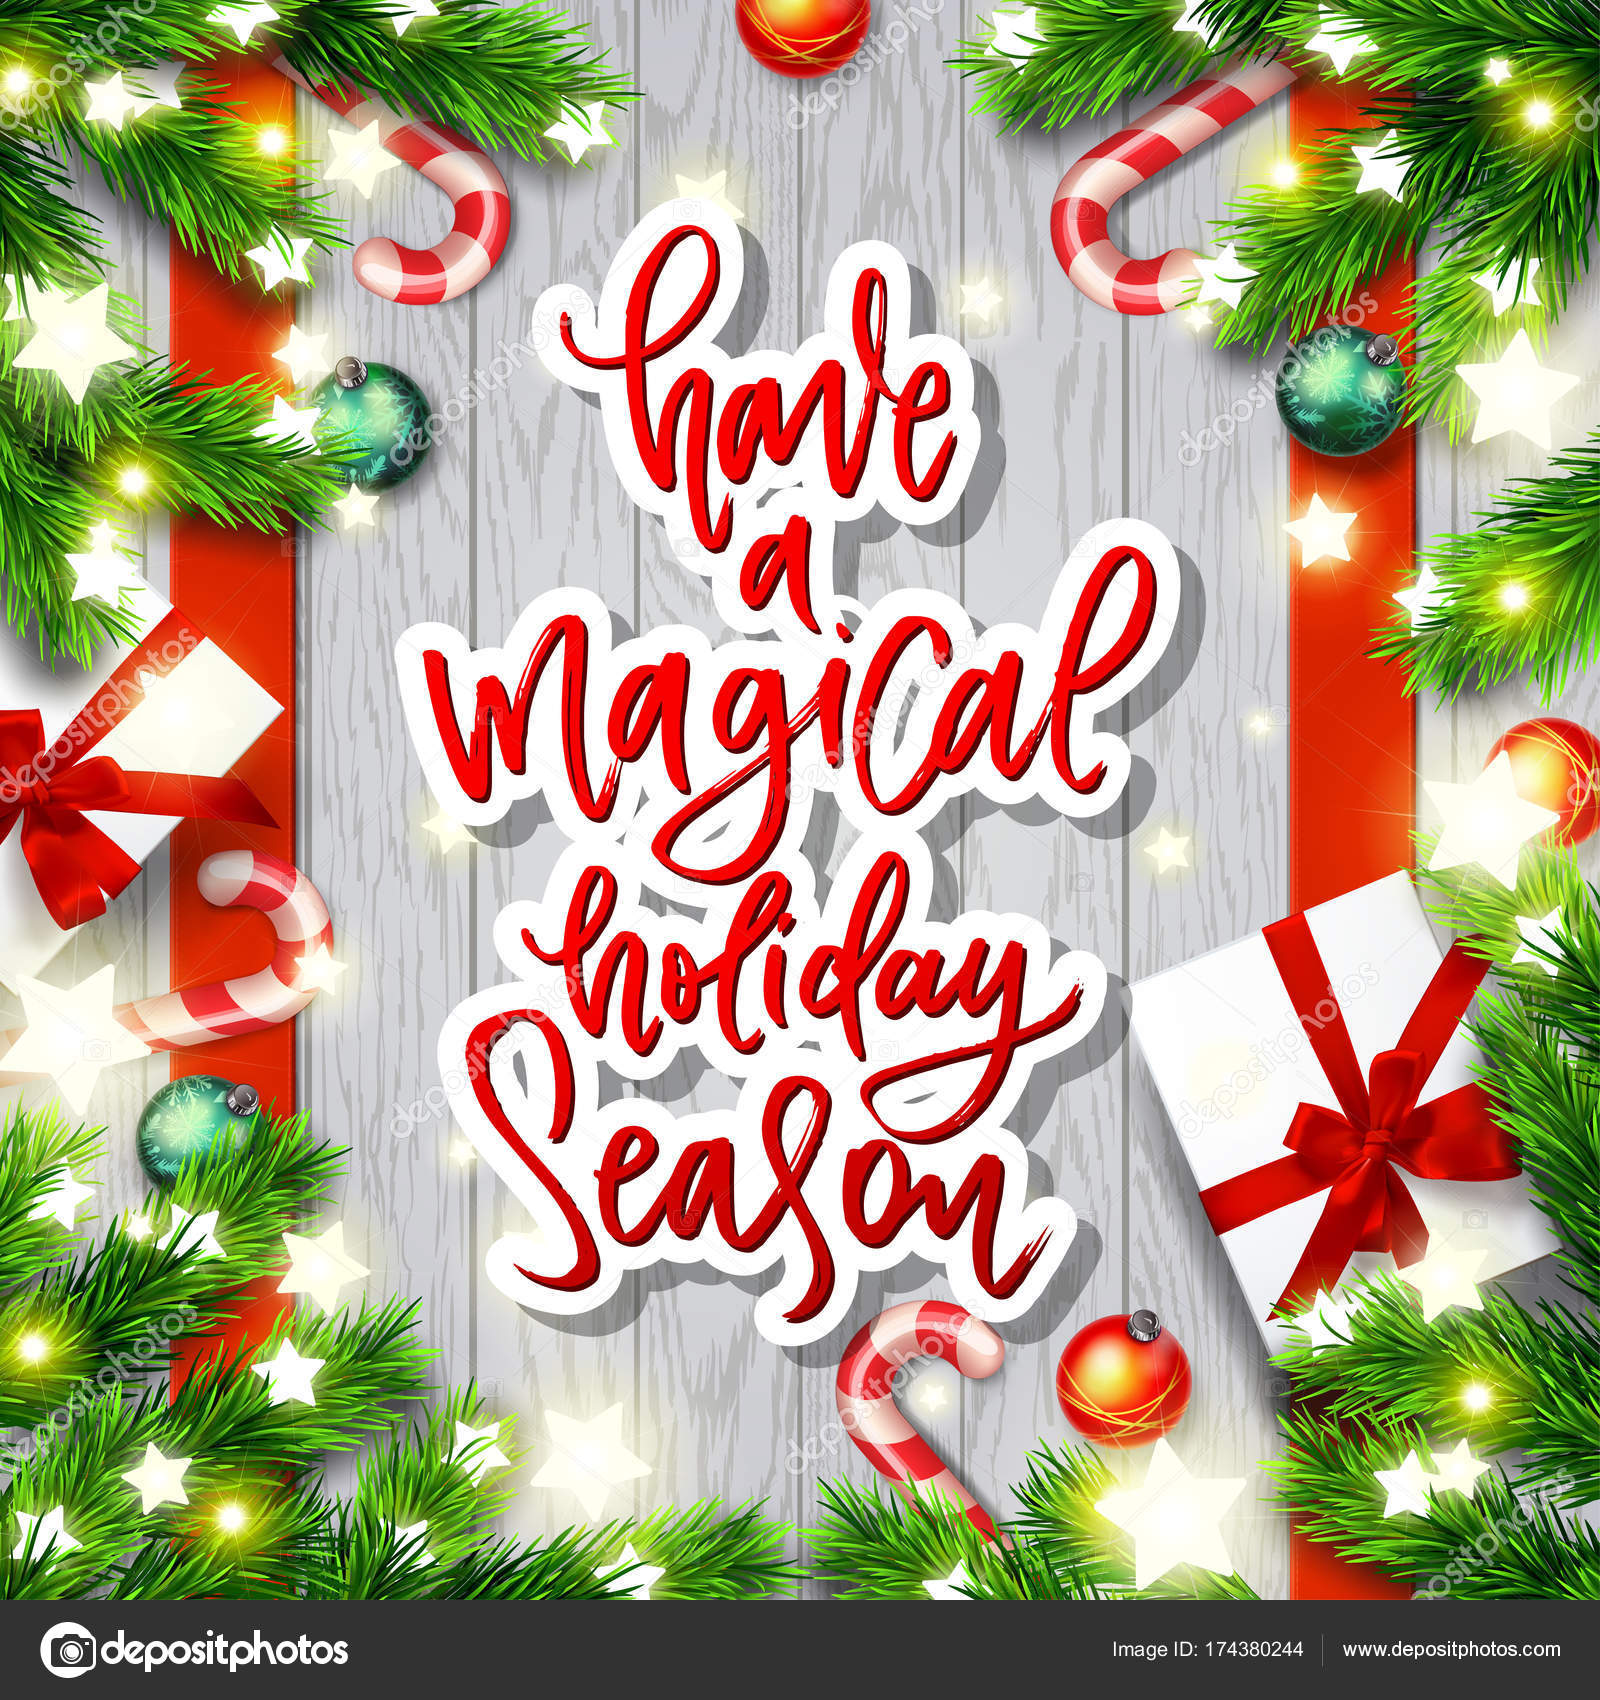 merry christmas greeting card happy new year xmas vector background hand drawn calligraphy have a magical holiday season vector by wywenka